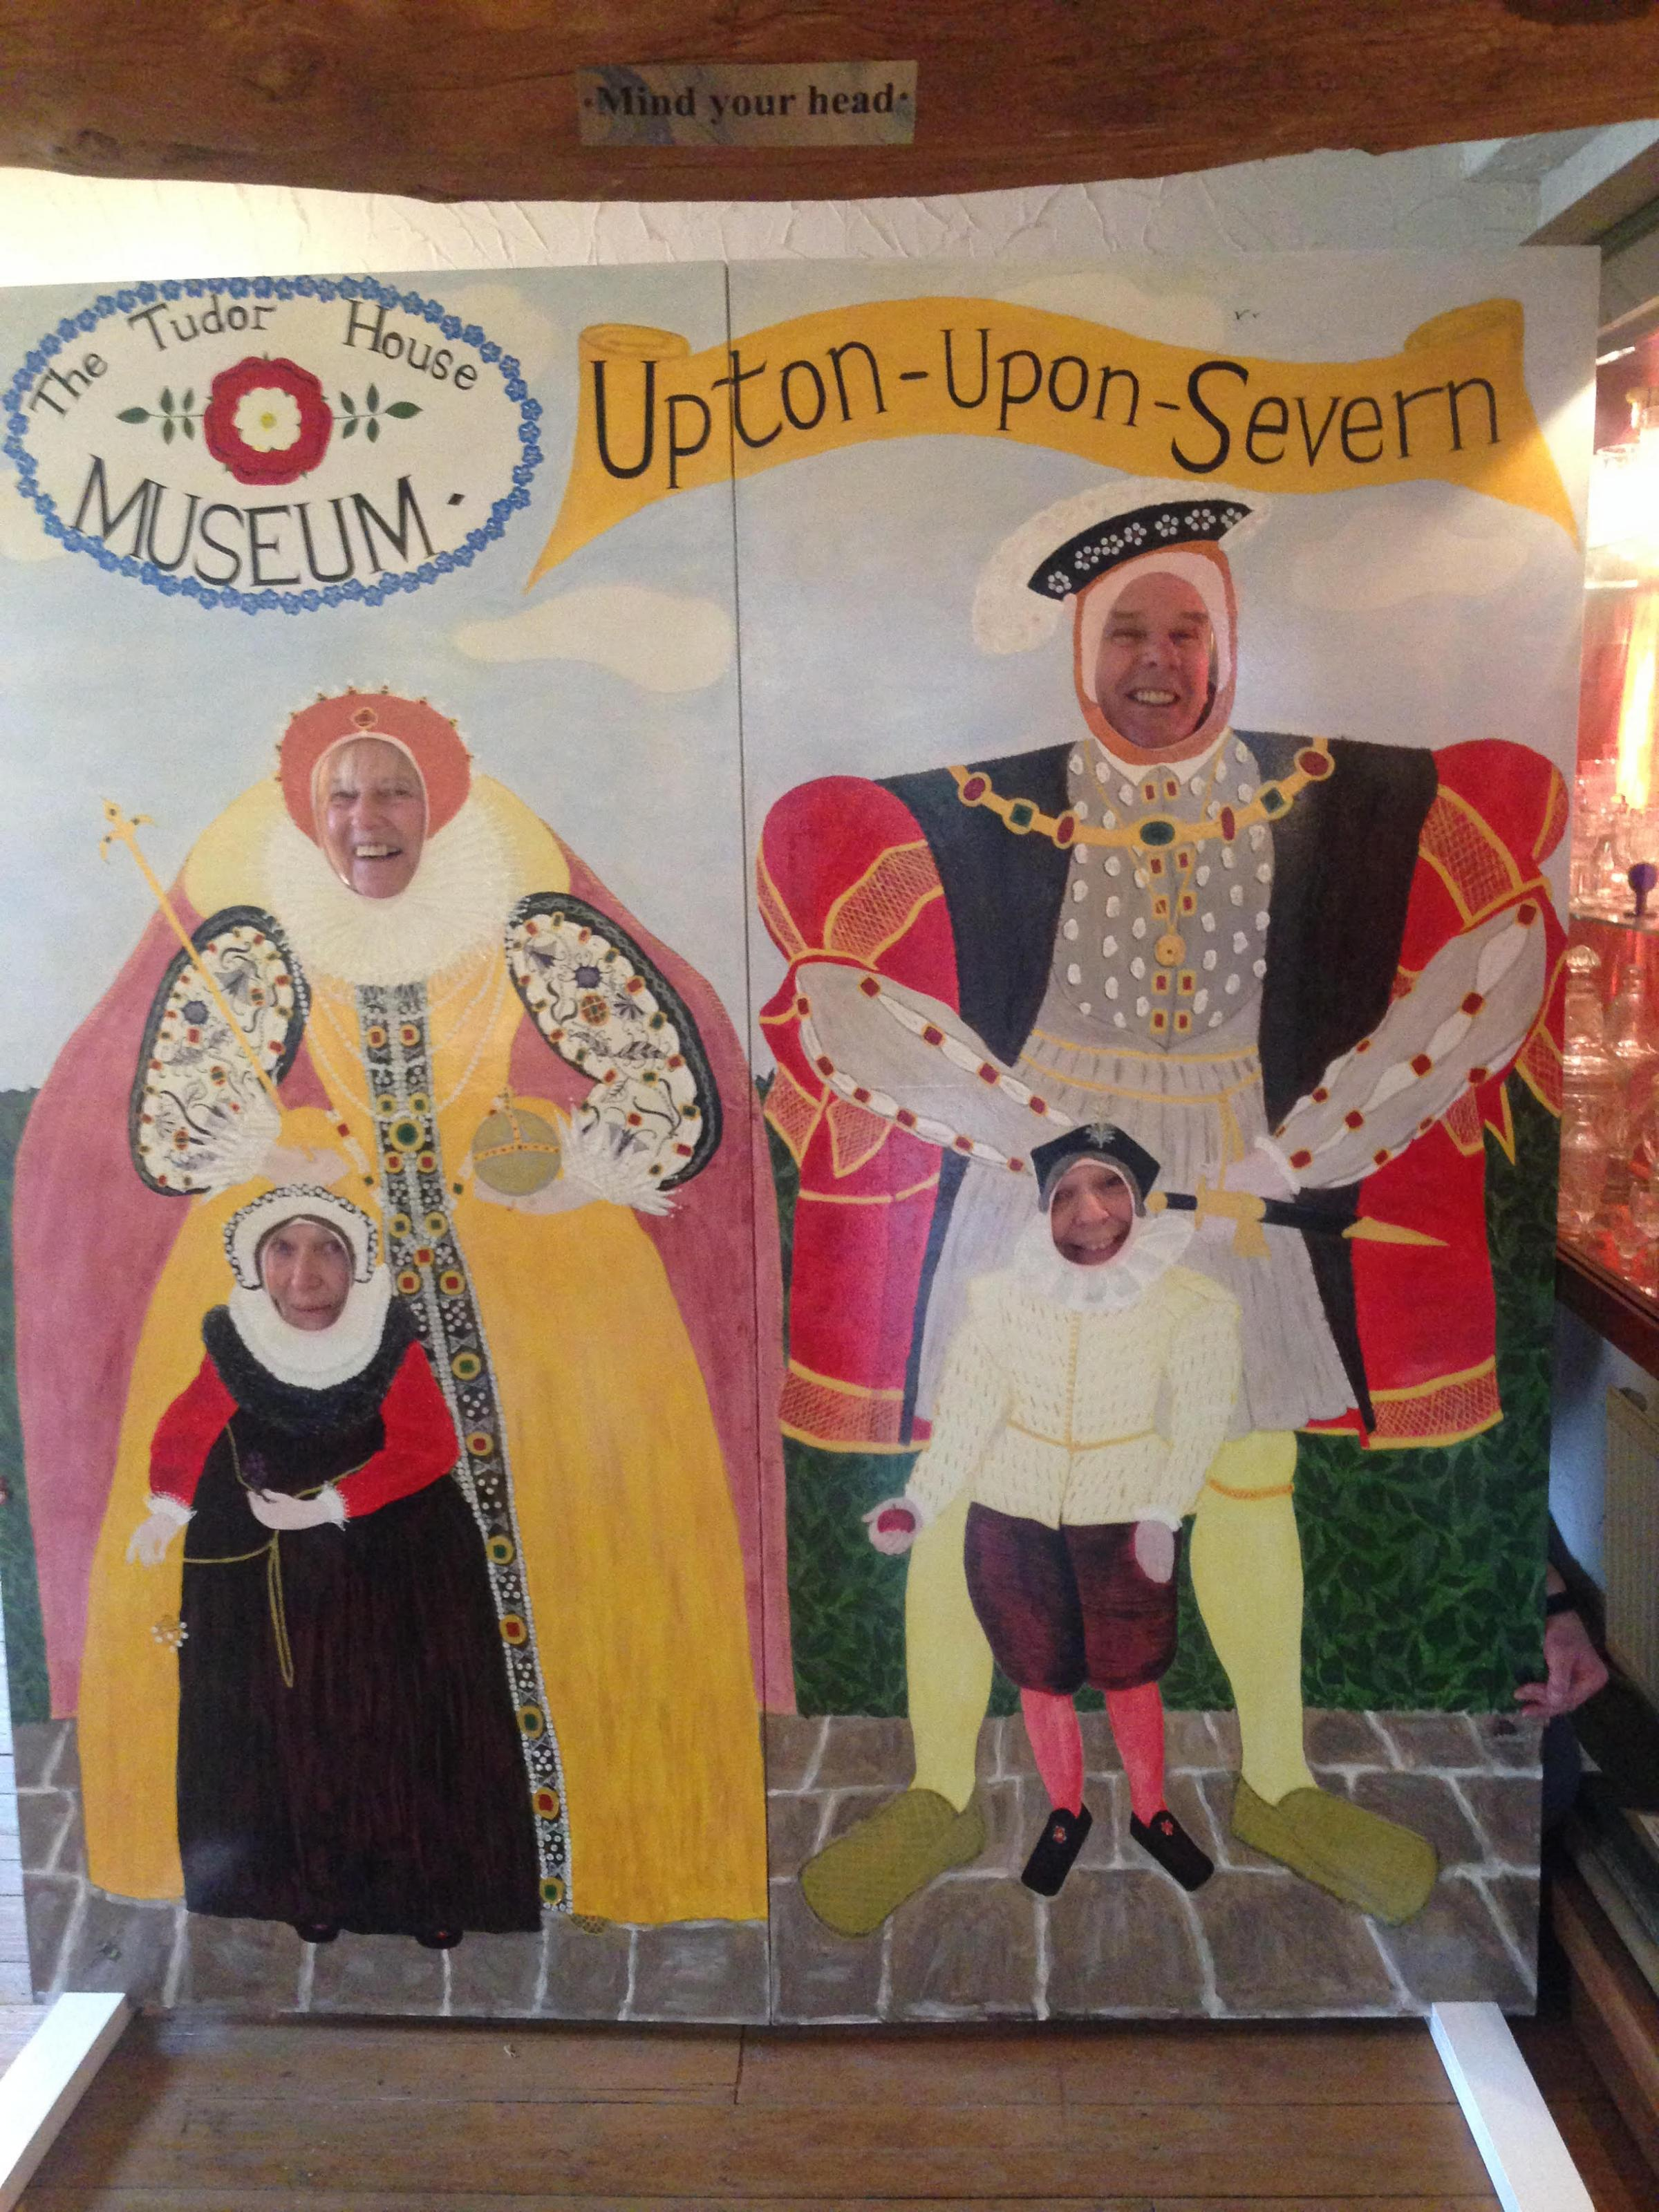 GRAND SUMMER OPENING DAY at THE TUDOR HOUSE MUSEUM, UPTON ON SEVERN